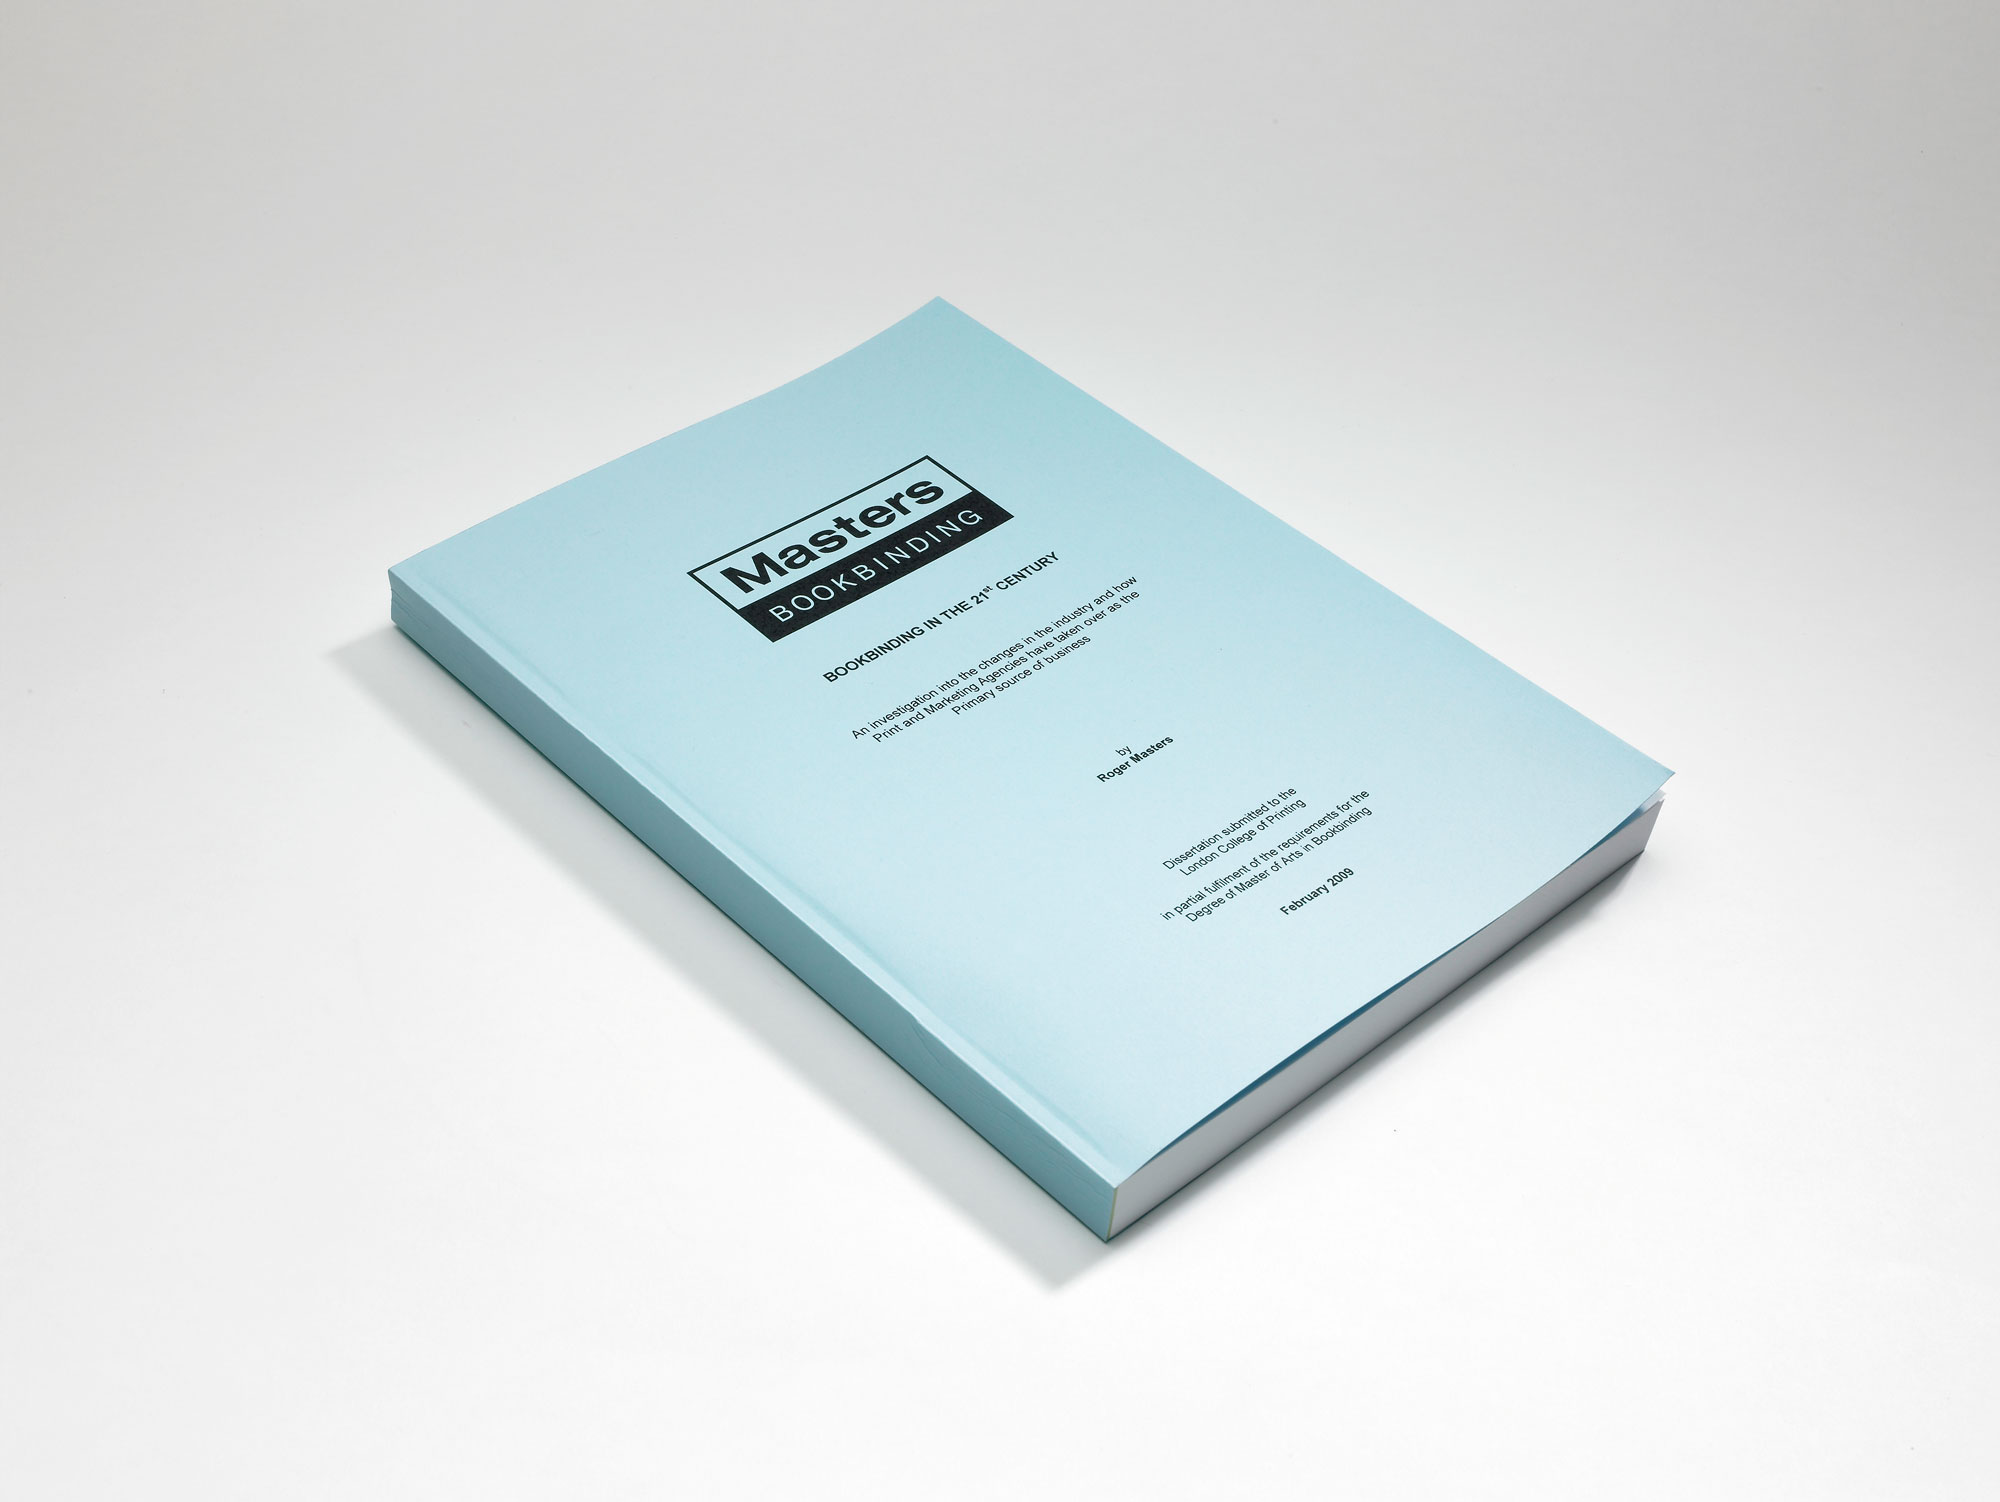 thesis binding and printing Thesis binding and printing in cork city - upload and order your thesis online for collection at our store in cork city or delivered to you at home.